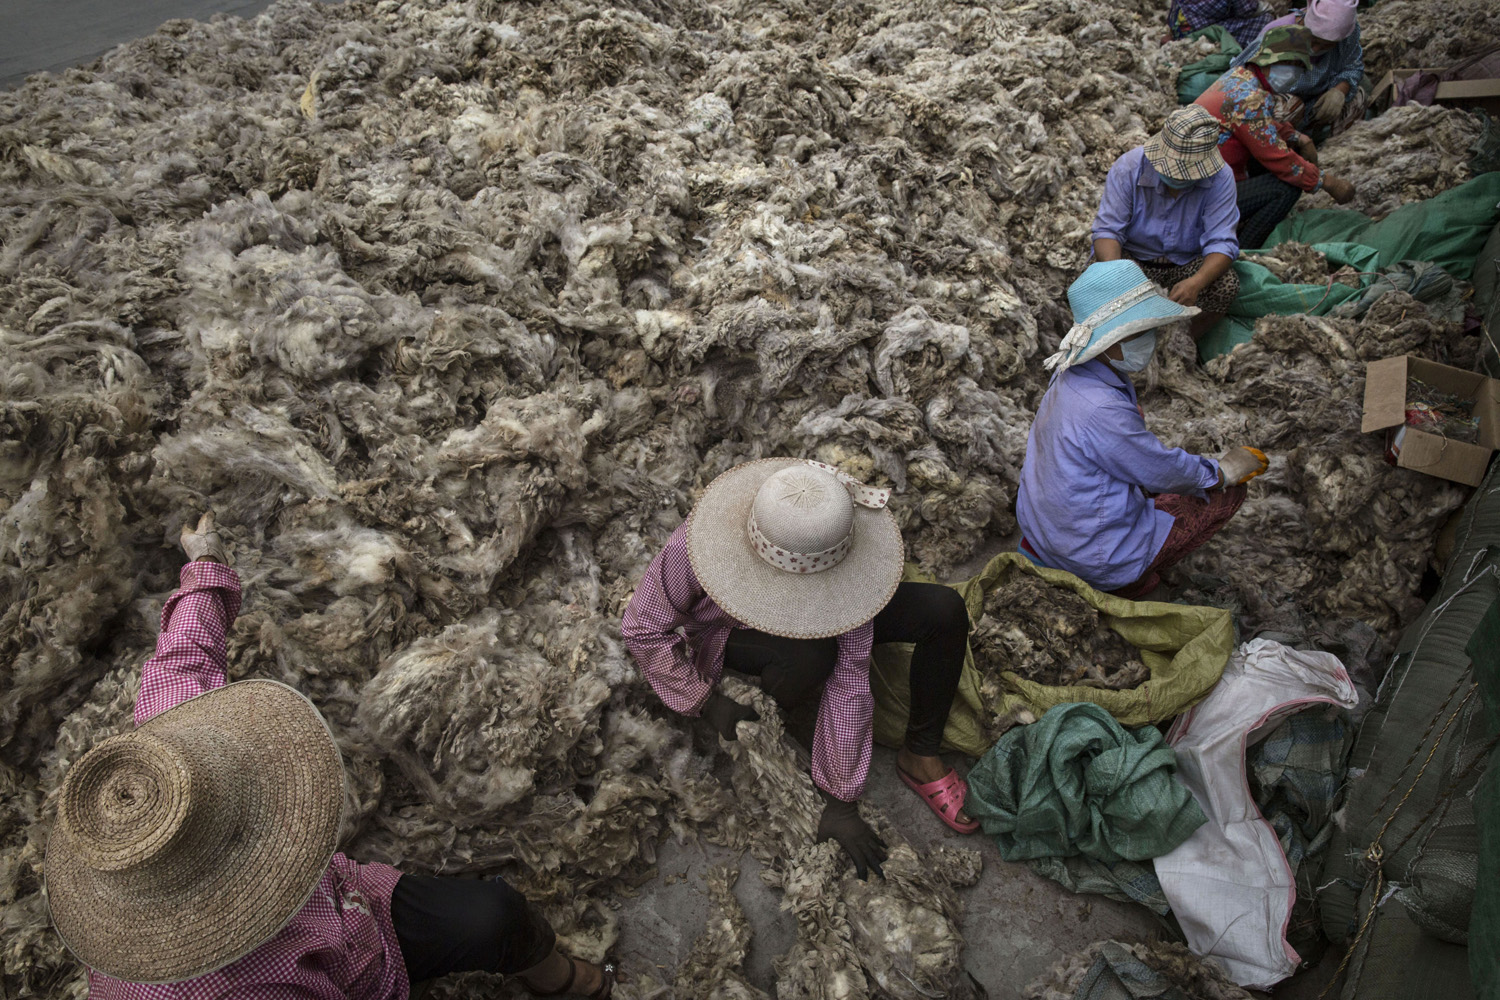 Jul. 12, 2014. Chinese workers prepare sheep's wool before it is processed and bleached at a factory near Zhangzhou, China.